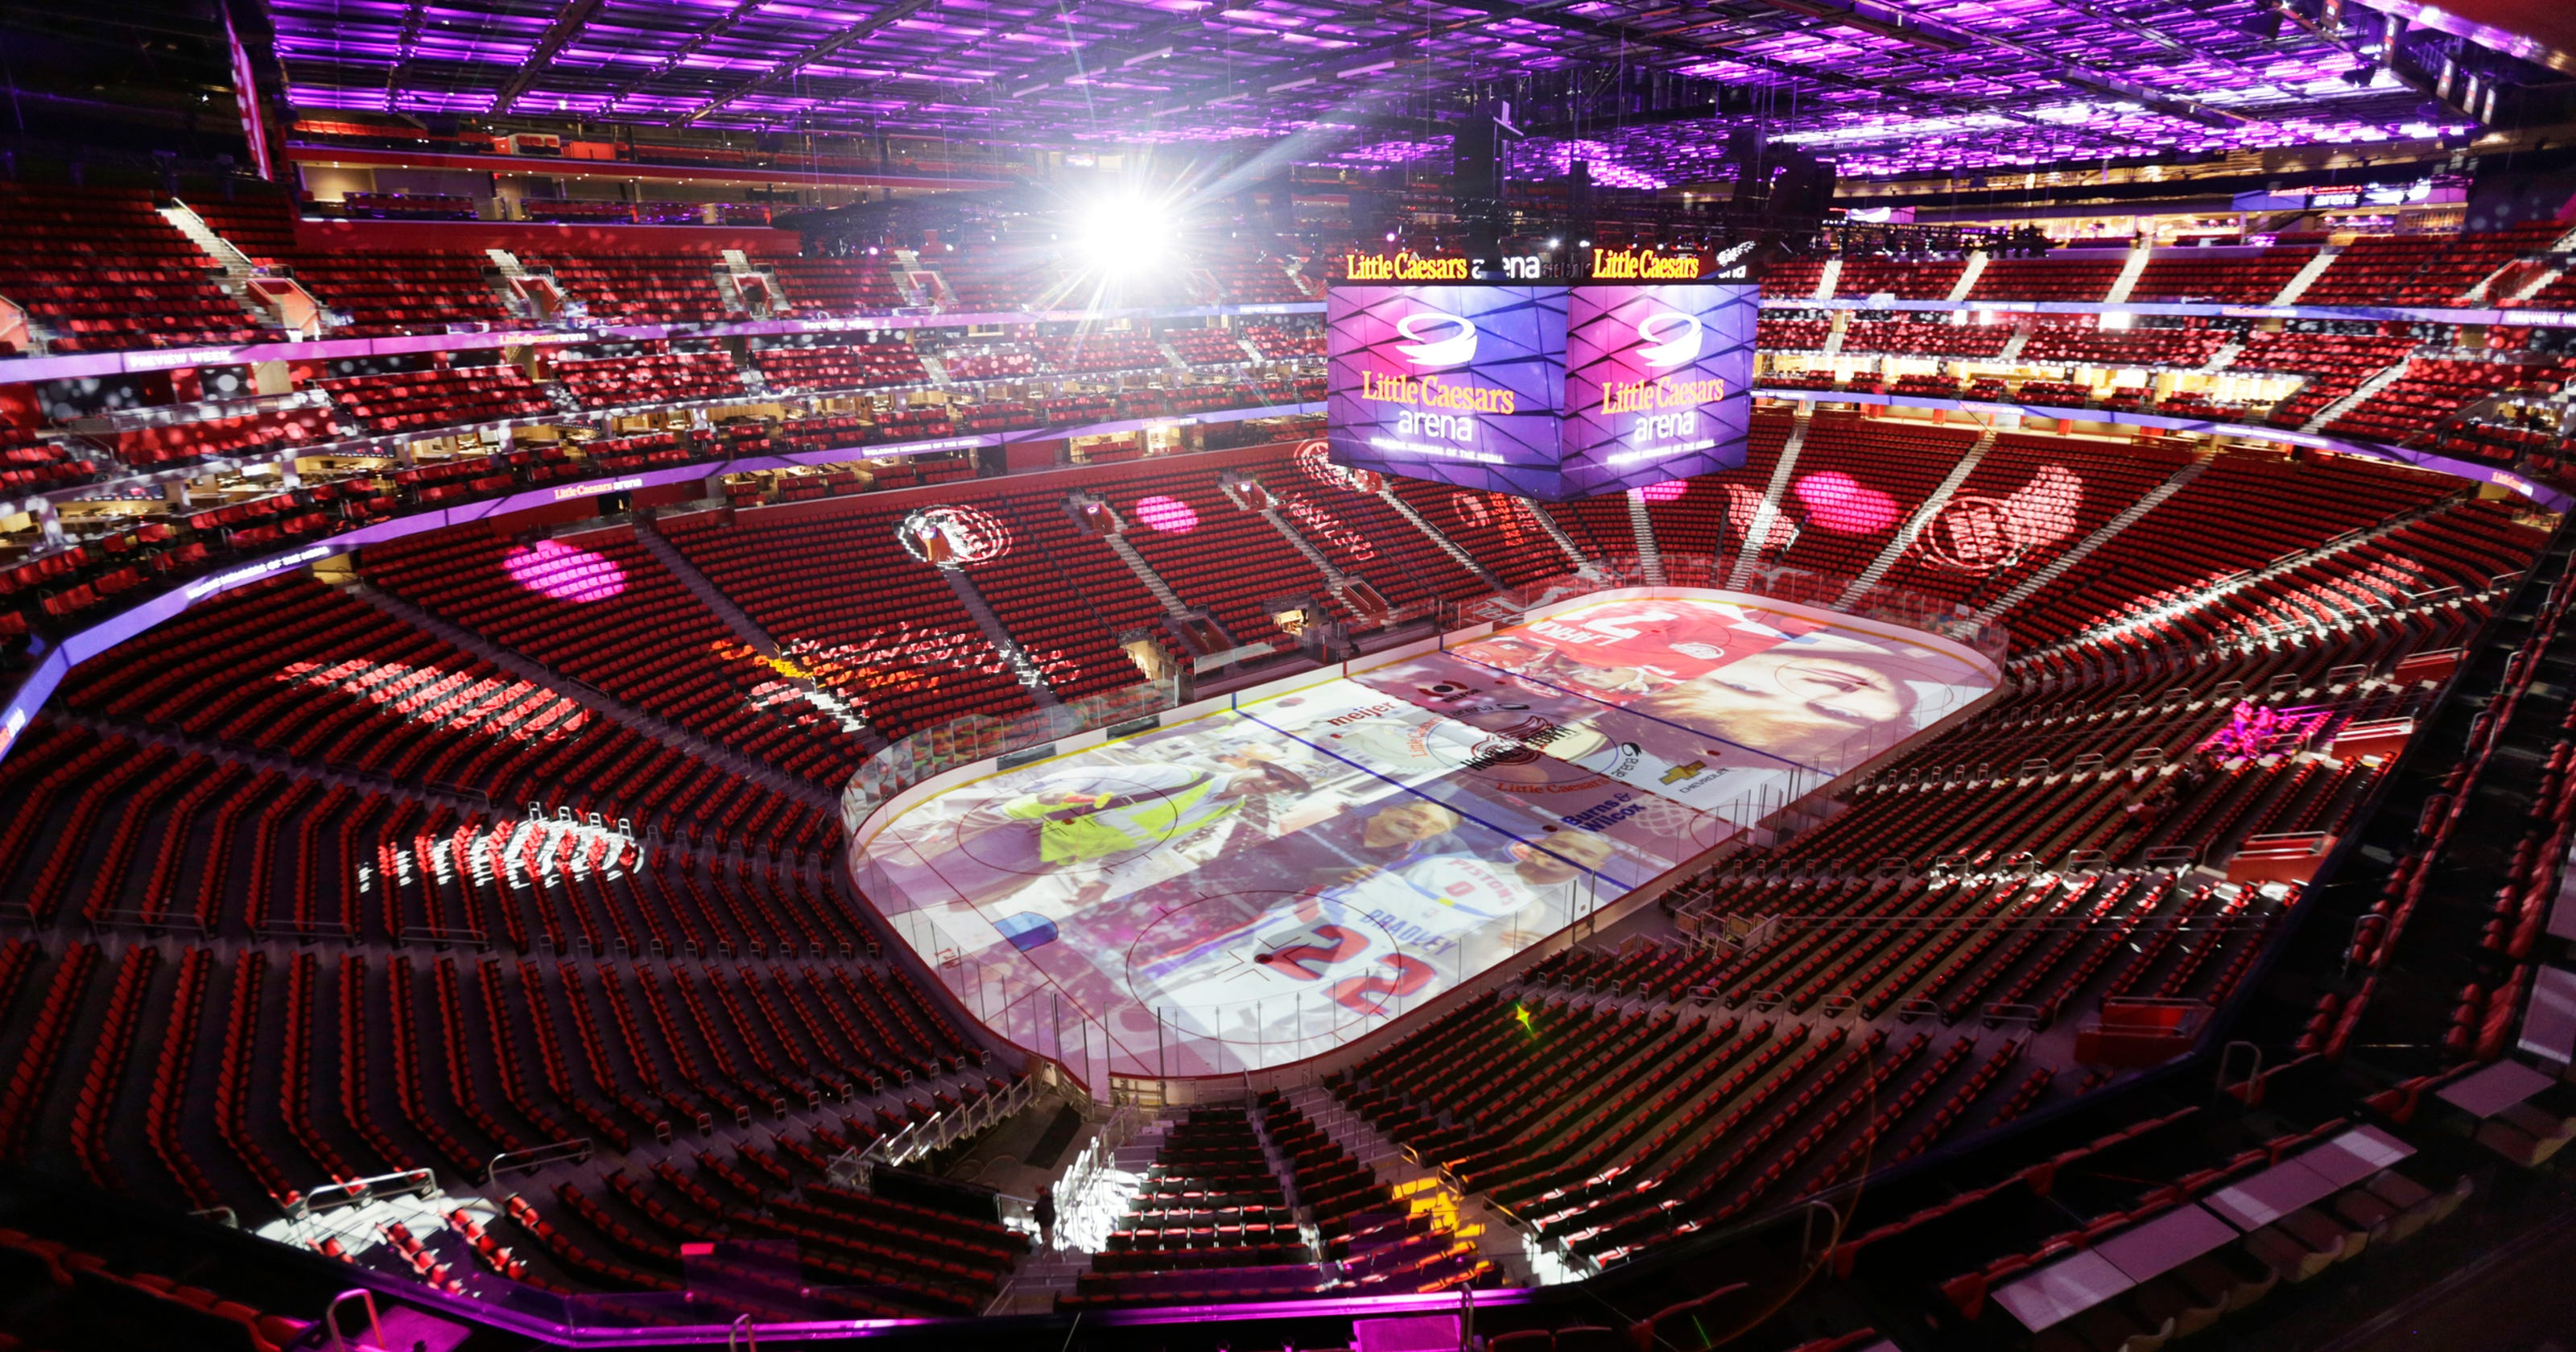 The concertgoer's guide to Little Caesars Arena